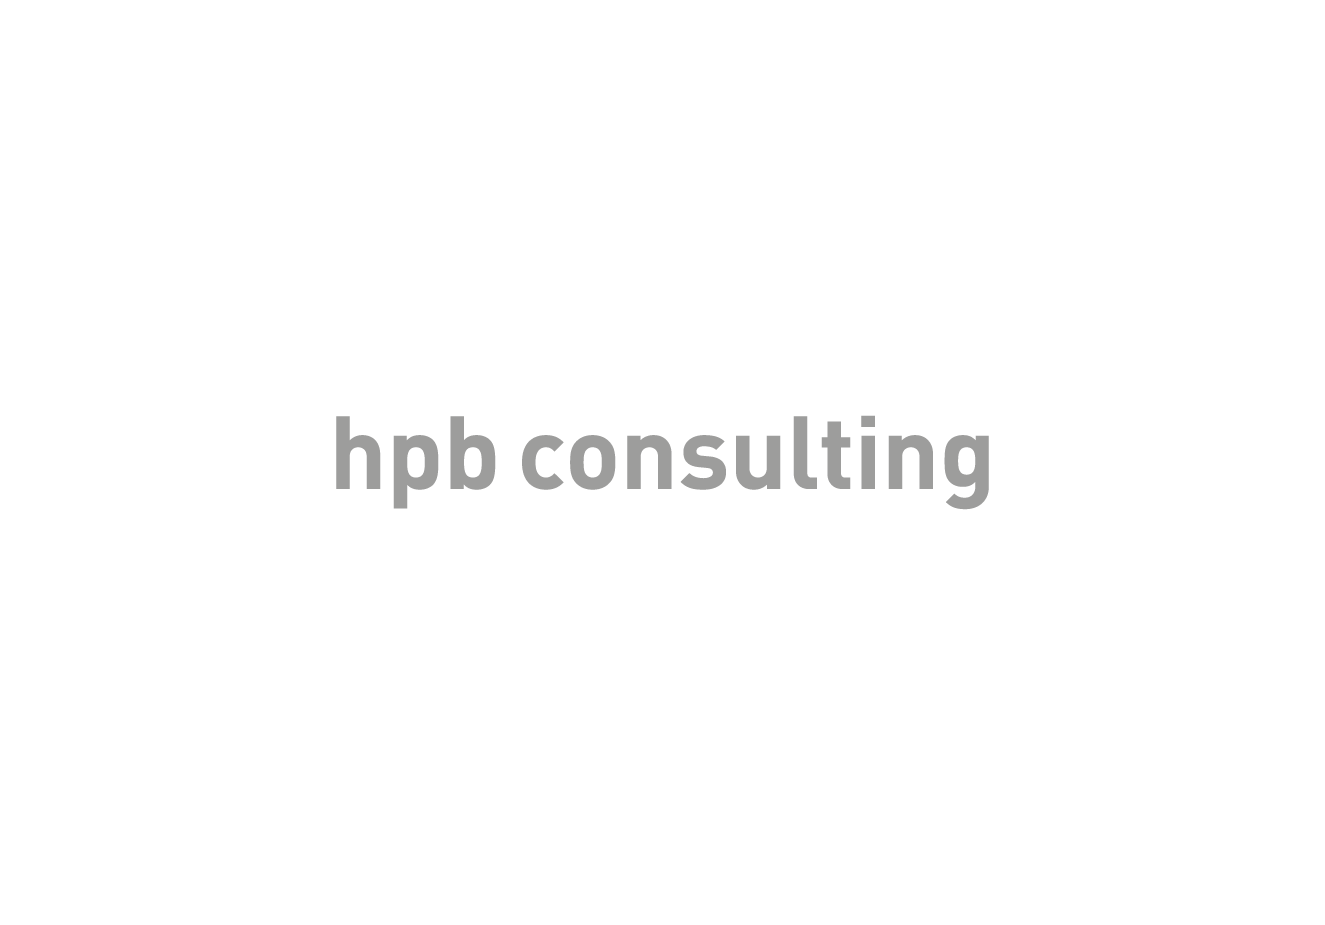 hpbconsulting-sw